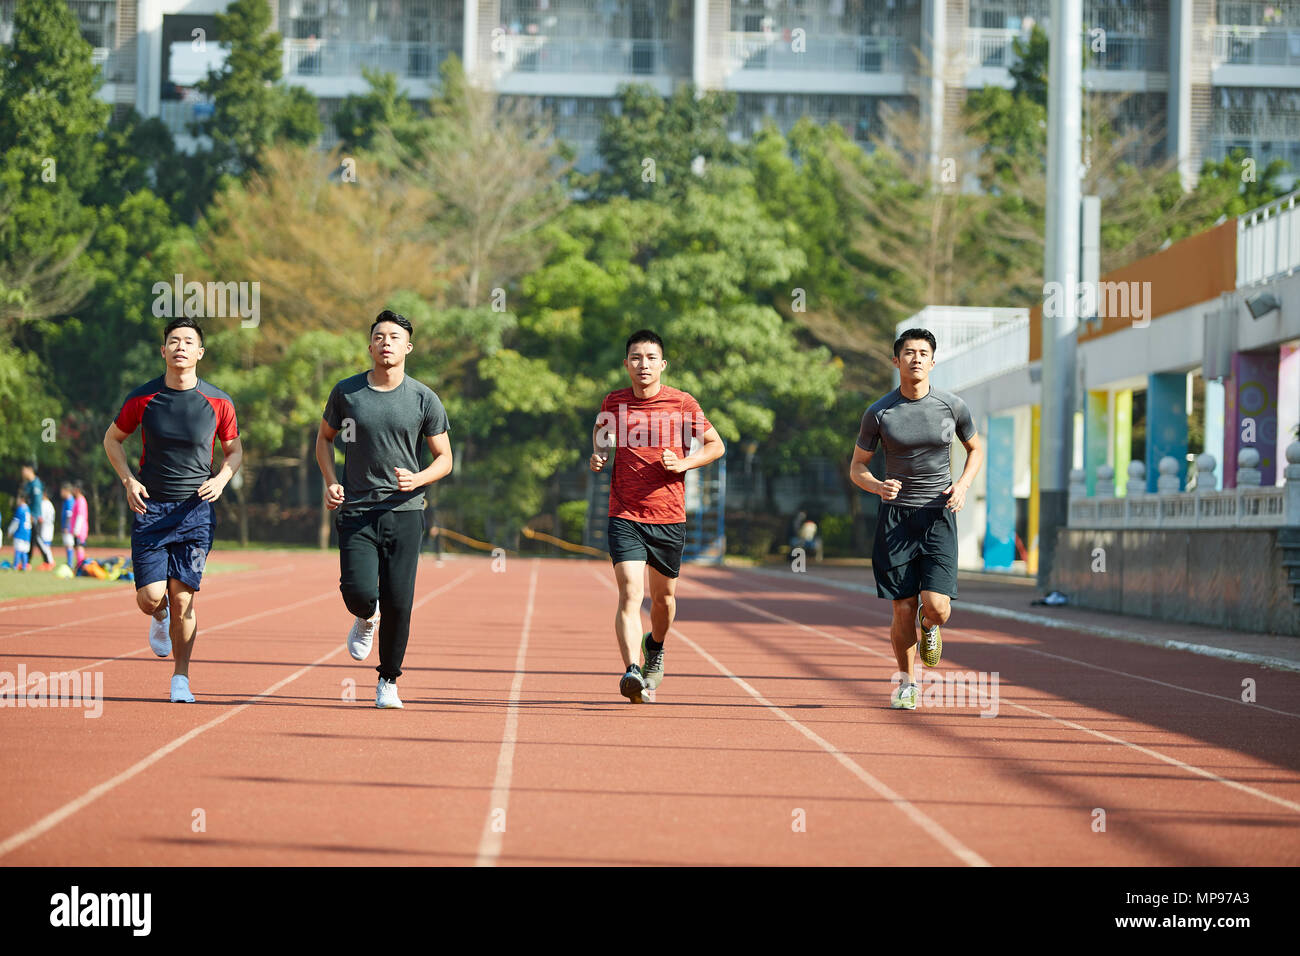 young asian adult athletes running training on track, front view. - Stock Image